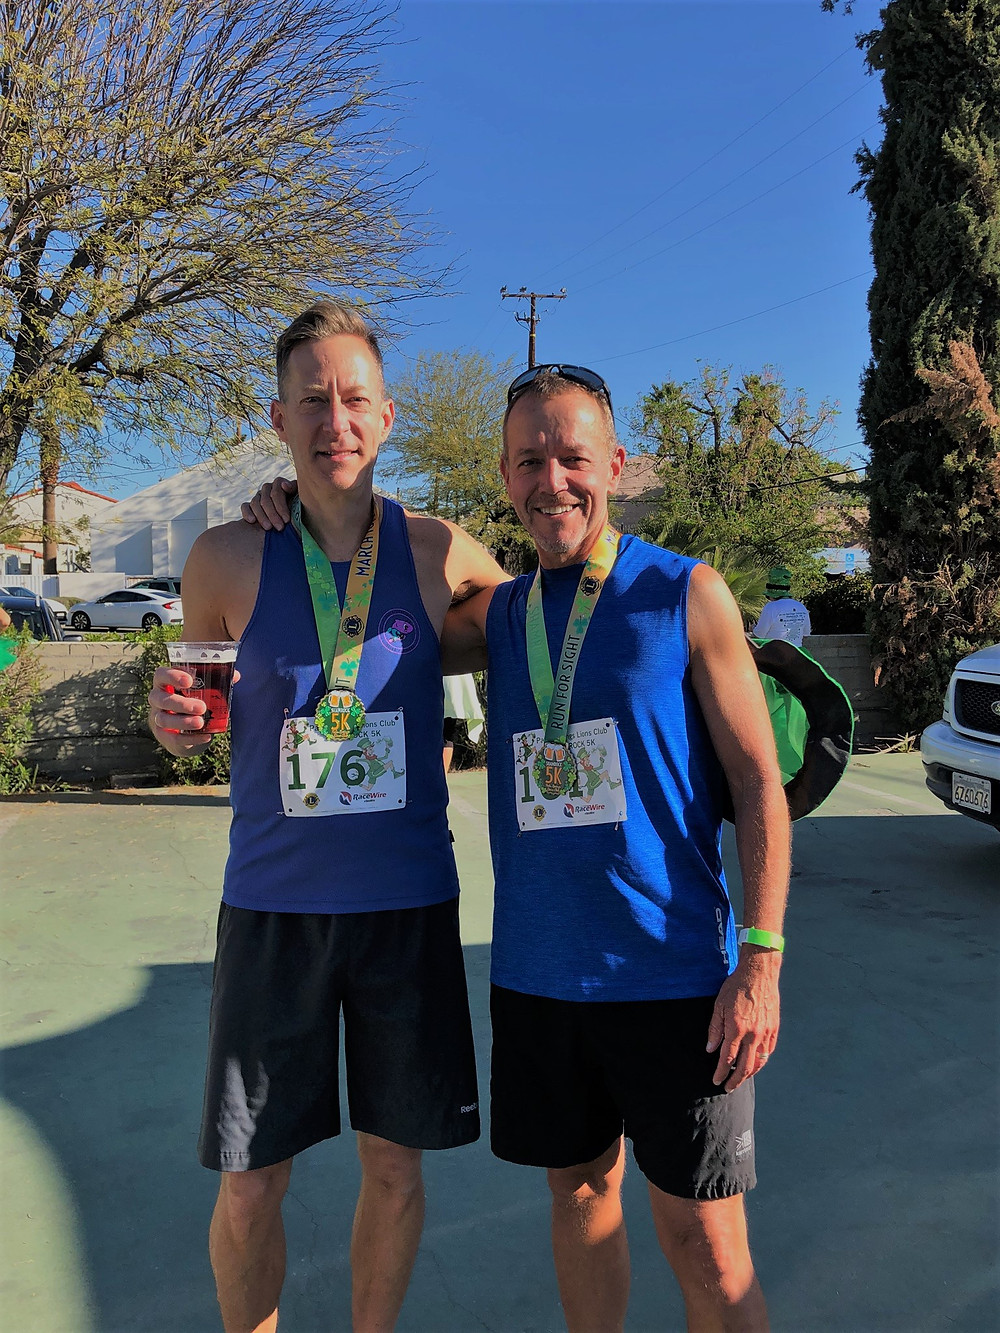 Beer after completing the 2019 St Patty's Day 5K road race in Palm Springs